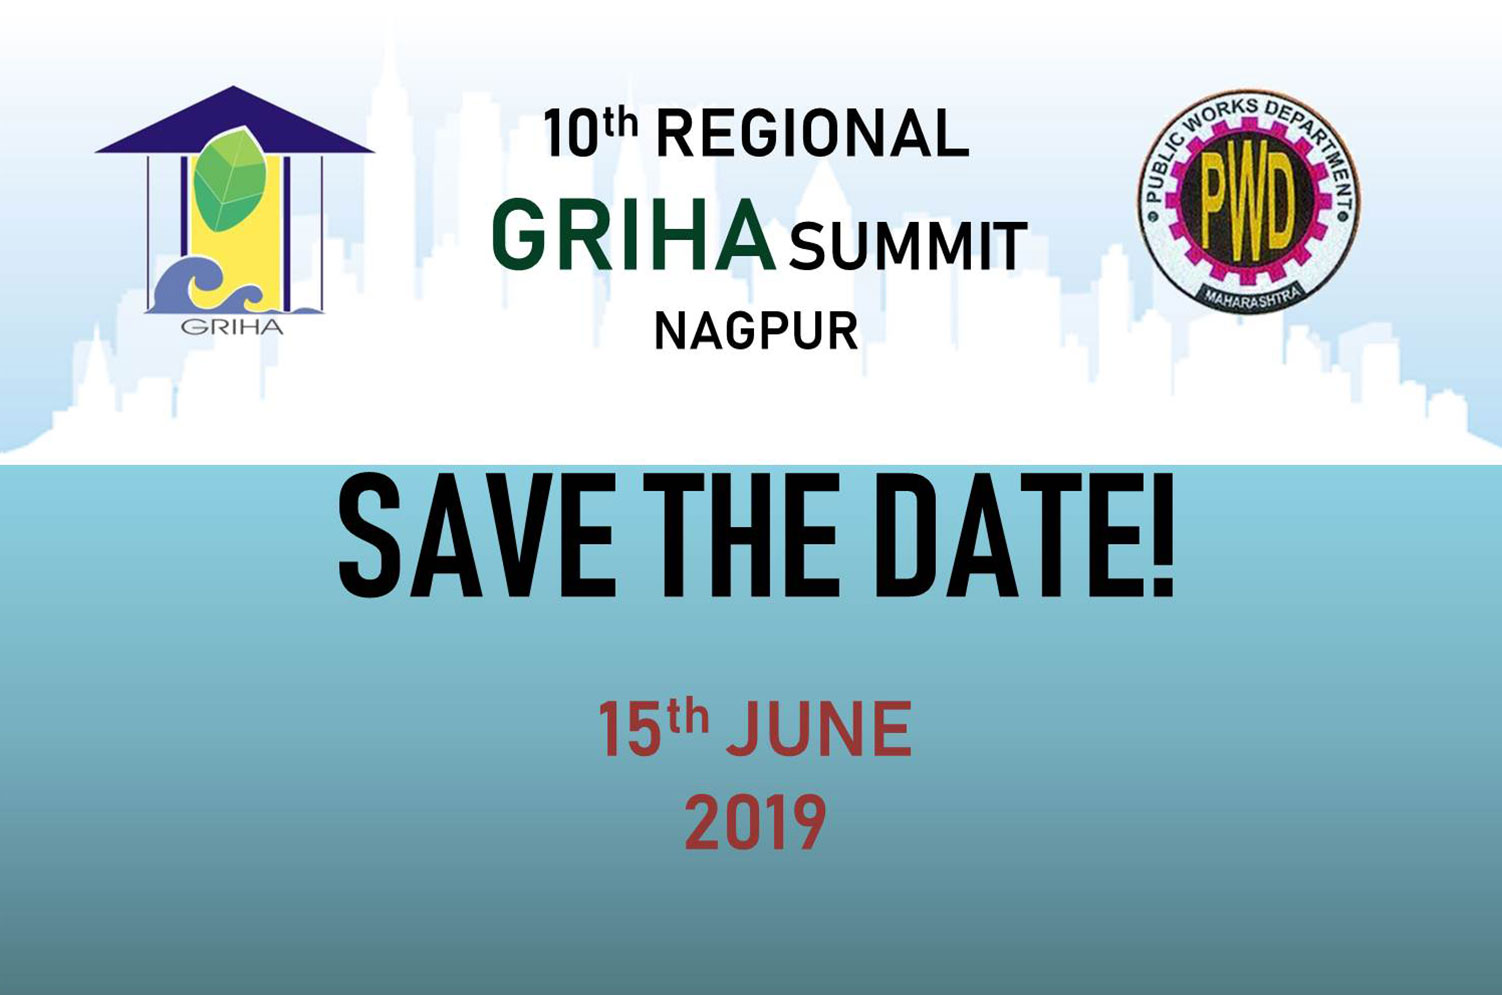 Regional GRIHA Summit